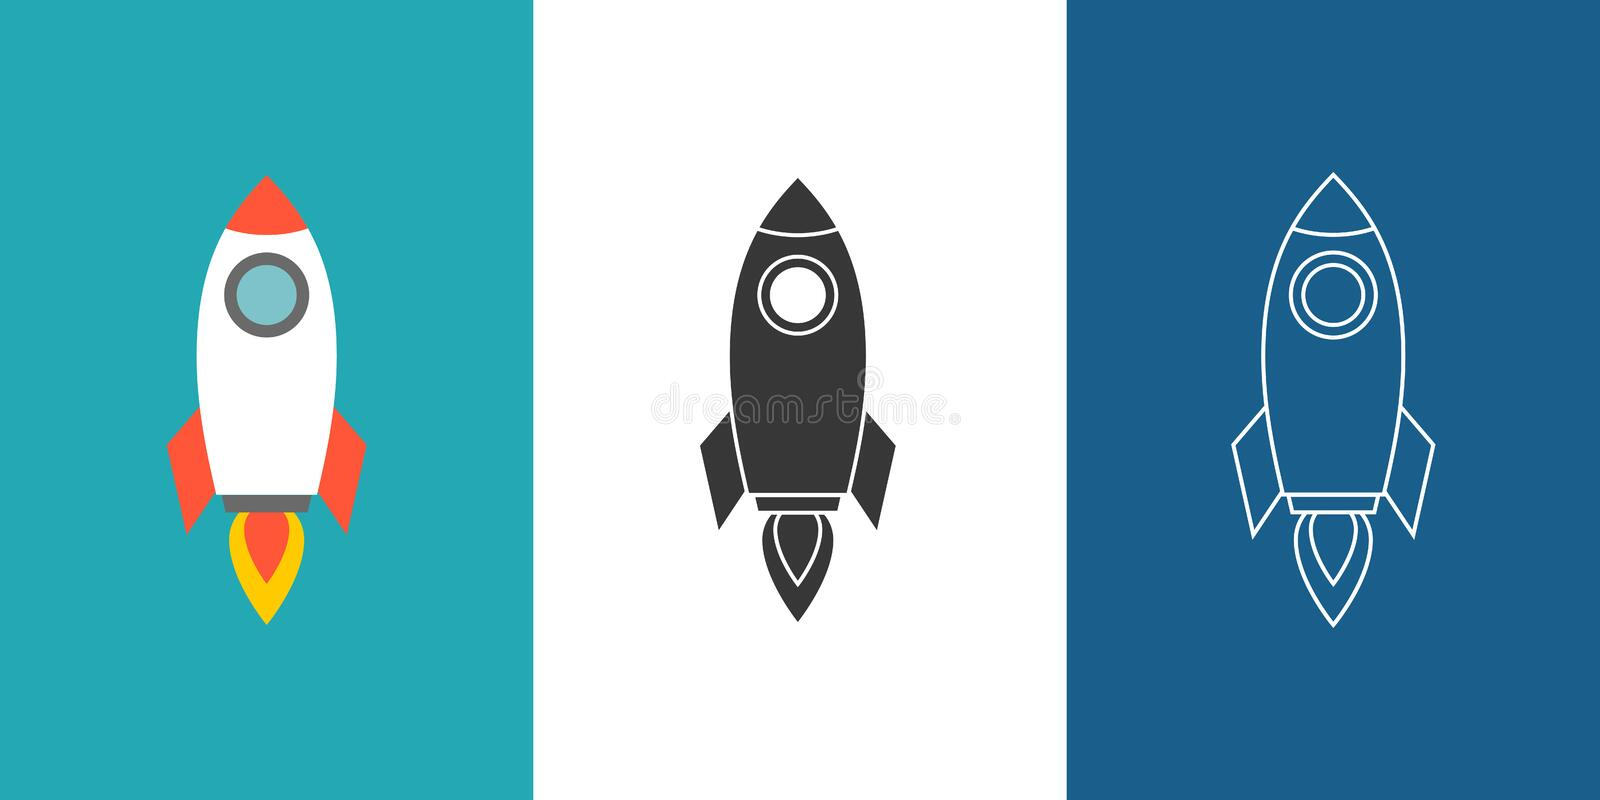 Rocket icon set. Flat design vector illustration